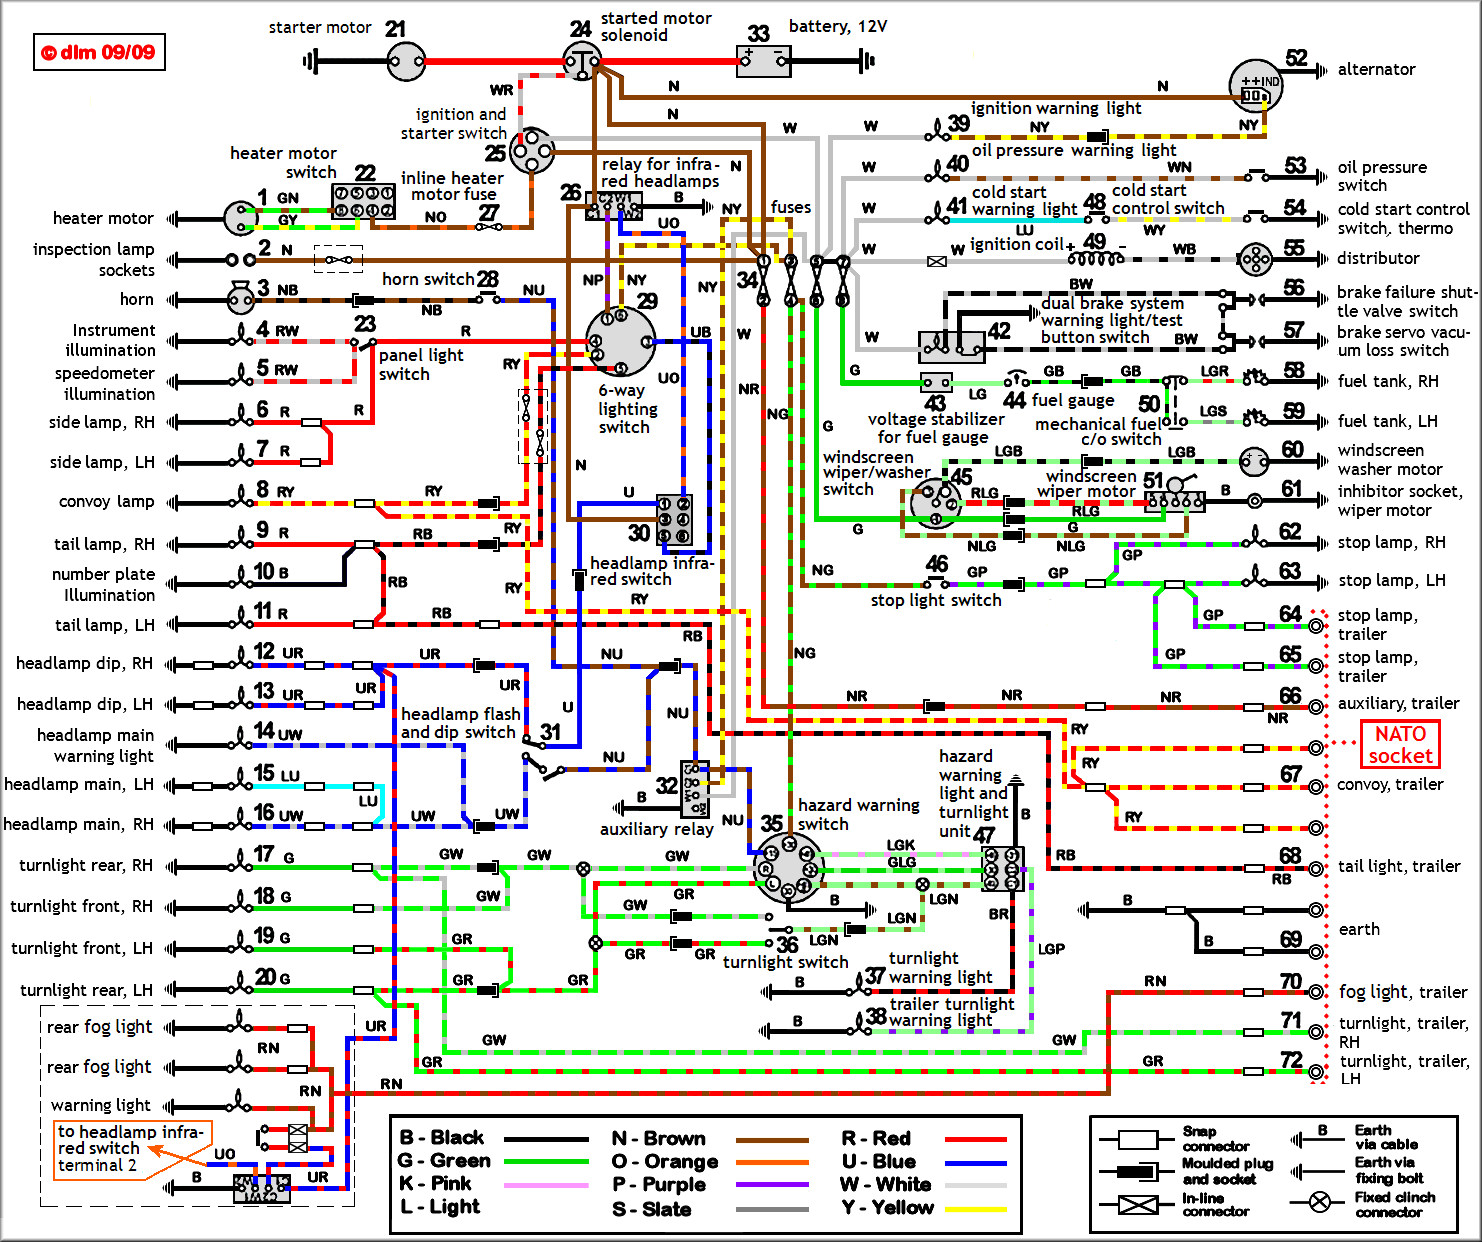 Wiring Diagram New 300tdi wiring diagram chinese 110 atv wiring diagram \u2022 free wiring land rover discovery 2 fuse box diagram at n-0.co